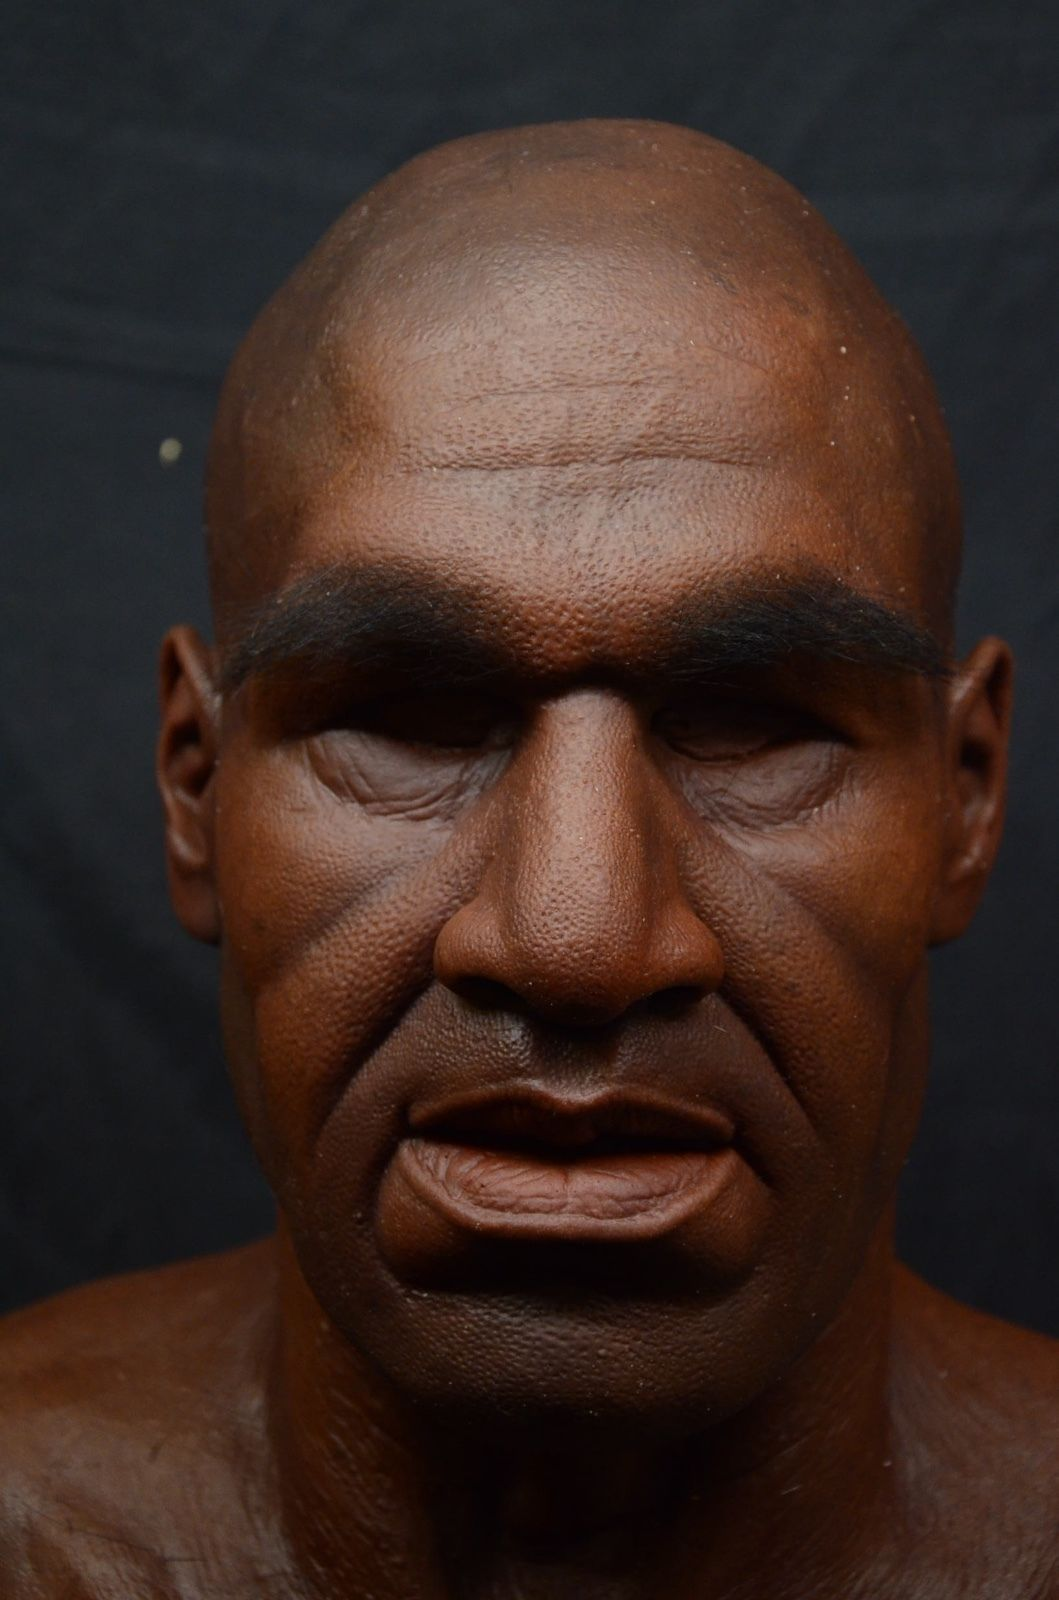 HAND MADE REALISTIC OLD MAN MASK. HAND PUNCHED EYEBROWS AND FULL ...